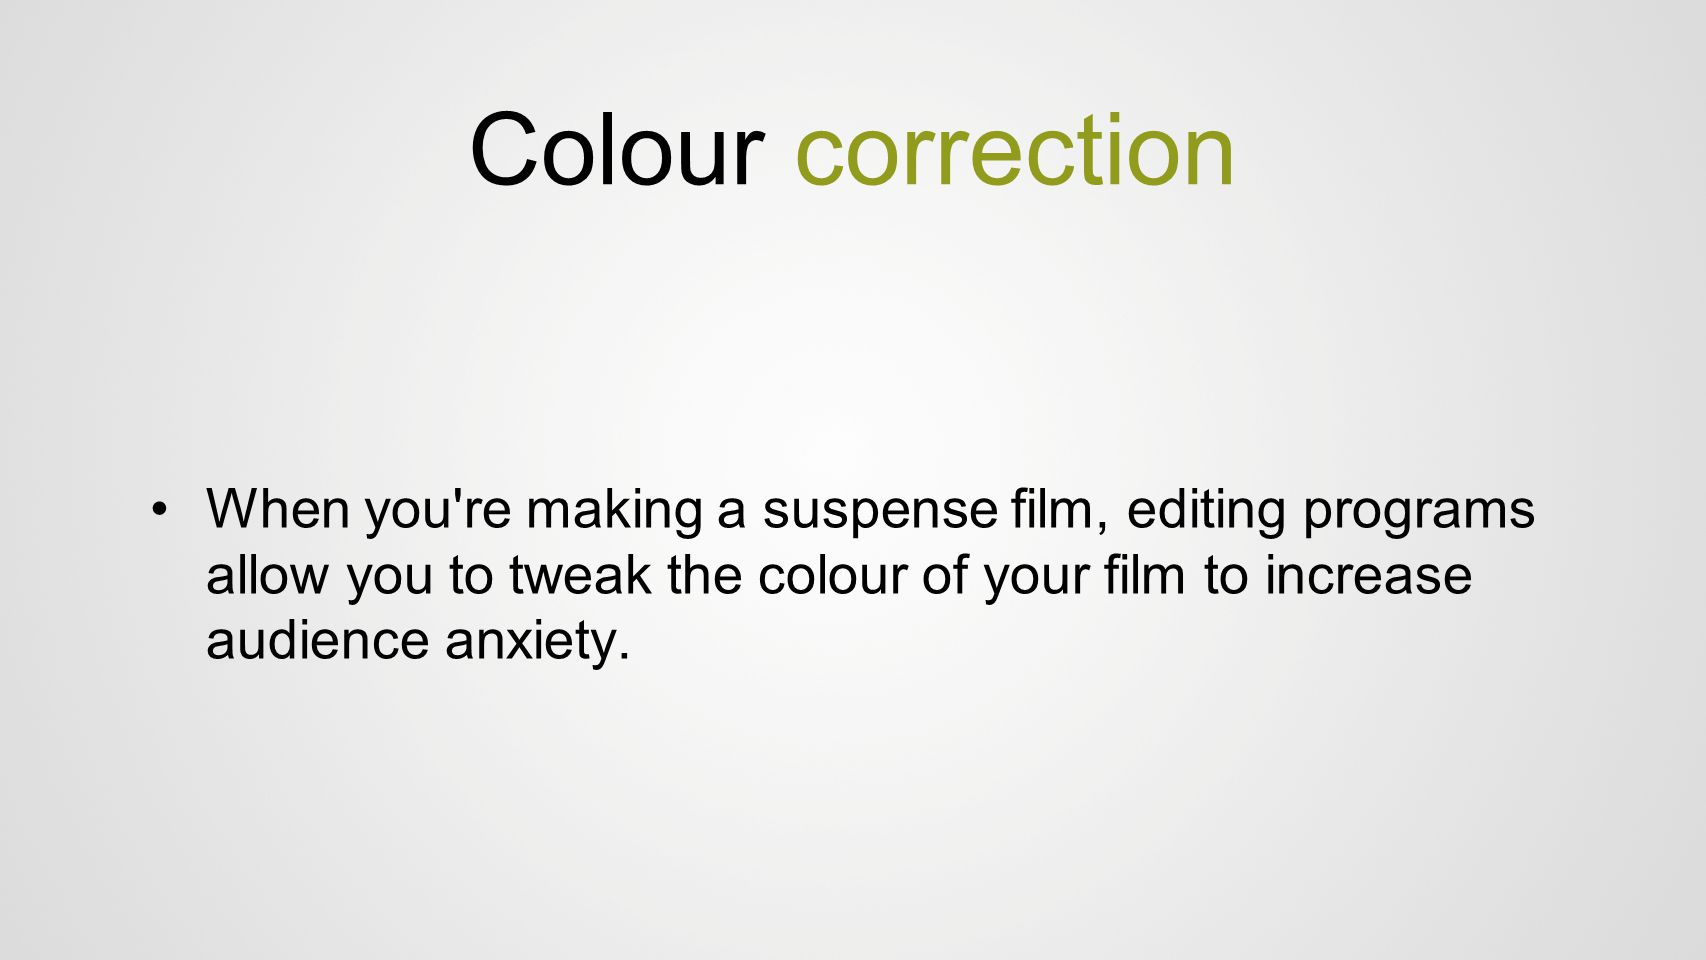 Colour correction When you re making a suspense film, editing programs allow you to tweak the colour of your film to increase audience anxiety.